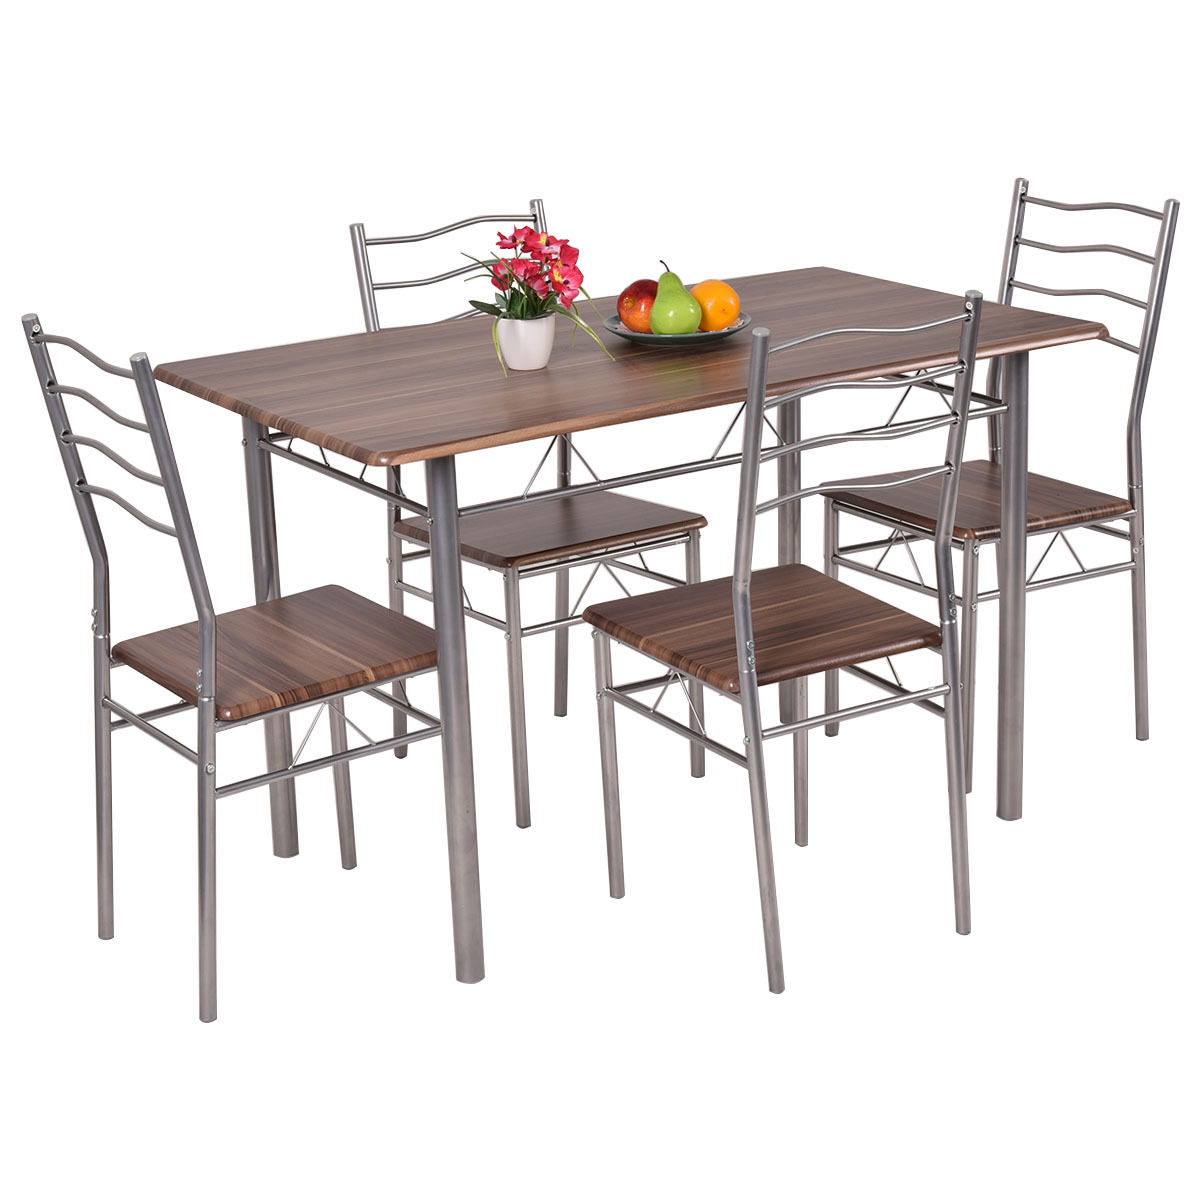 mainstays round high top folding table walnut accent monarch cappuccino marble bronze metal large cover outside lawn chairs console desk tiffany pond lily lamp farm trestle base